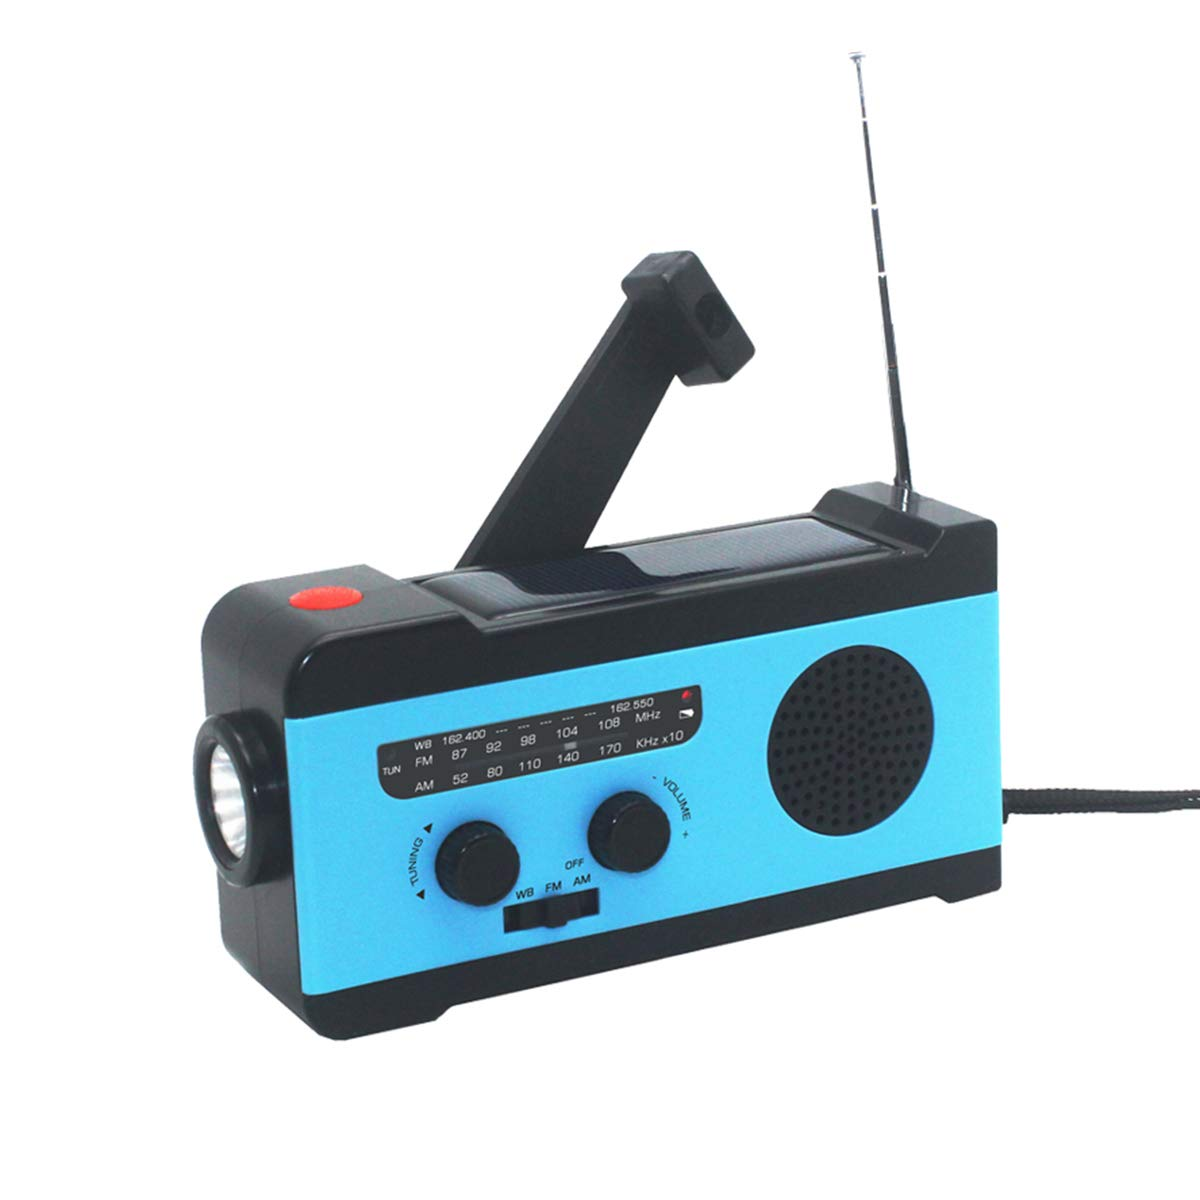 VOSAREA Portable Radio FM Receiver Emergency Radio with Alarm Clock FM Radio FM Receiver by VOSAREA (Image #1)